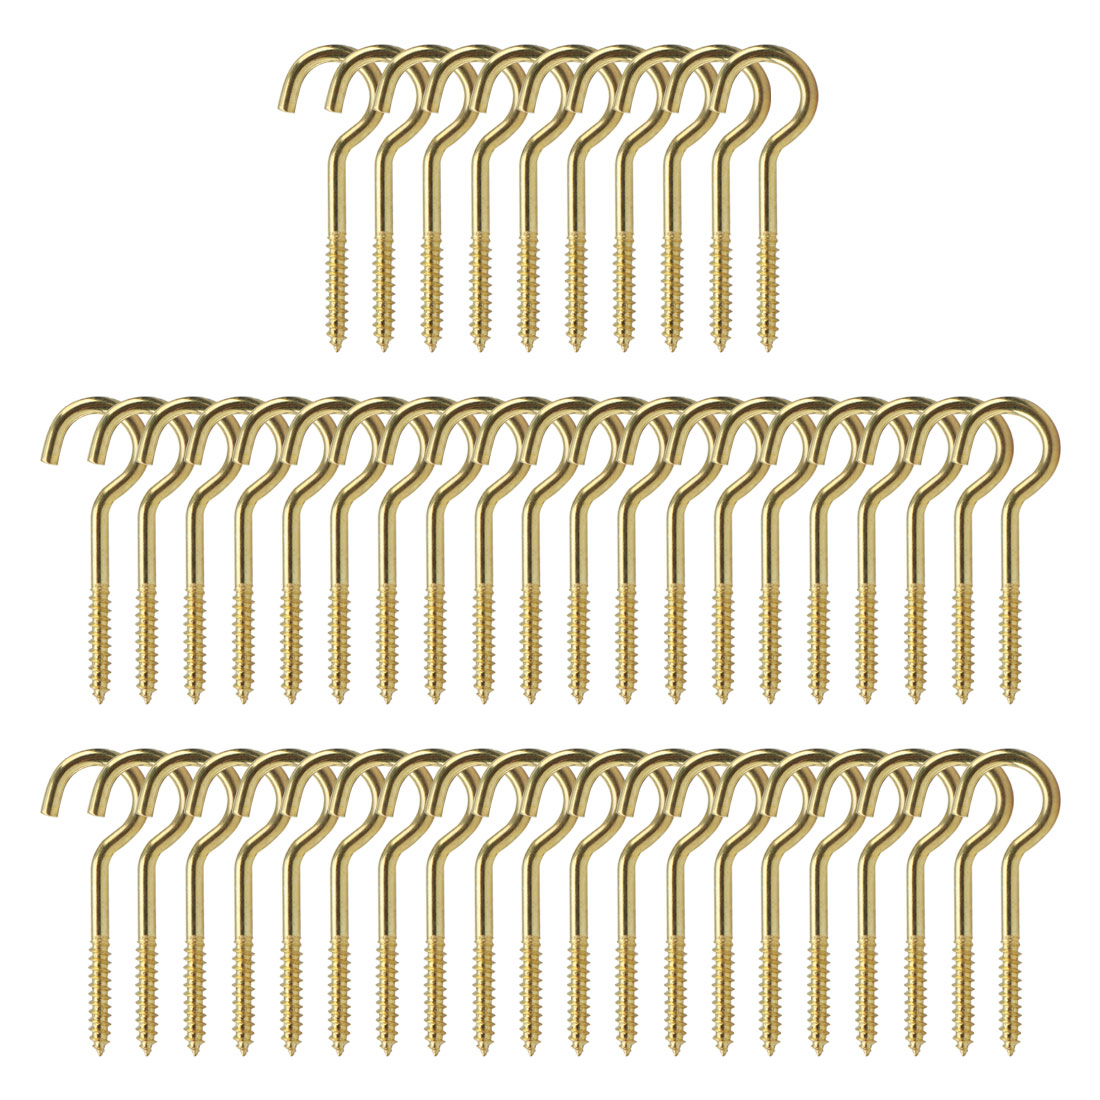 50pcs Cup Ceiling Hooks 1-1/4 Inch Durable Metal Screw in Hanger Hooks Gold Tone